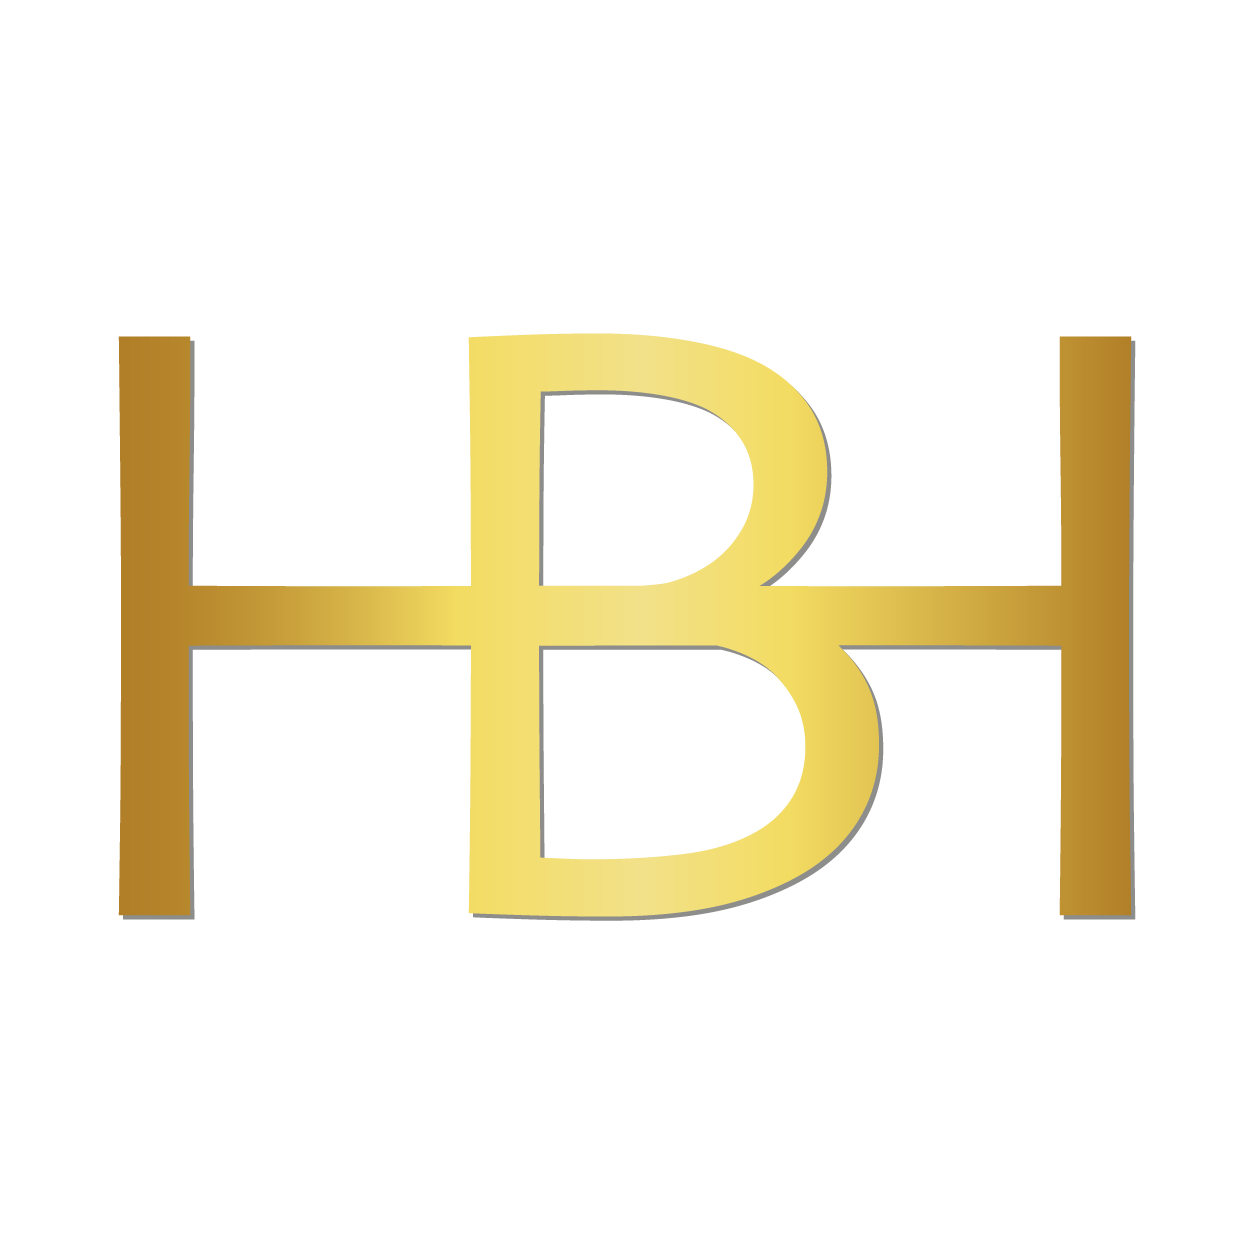 hbh paris logo 300x300